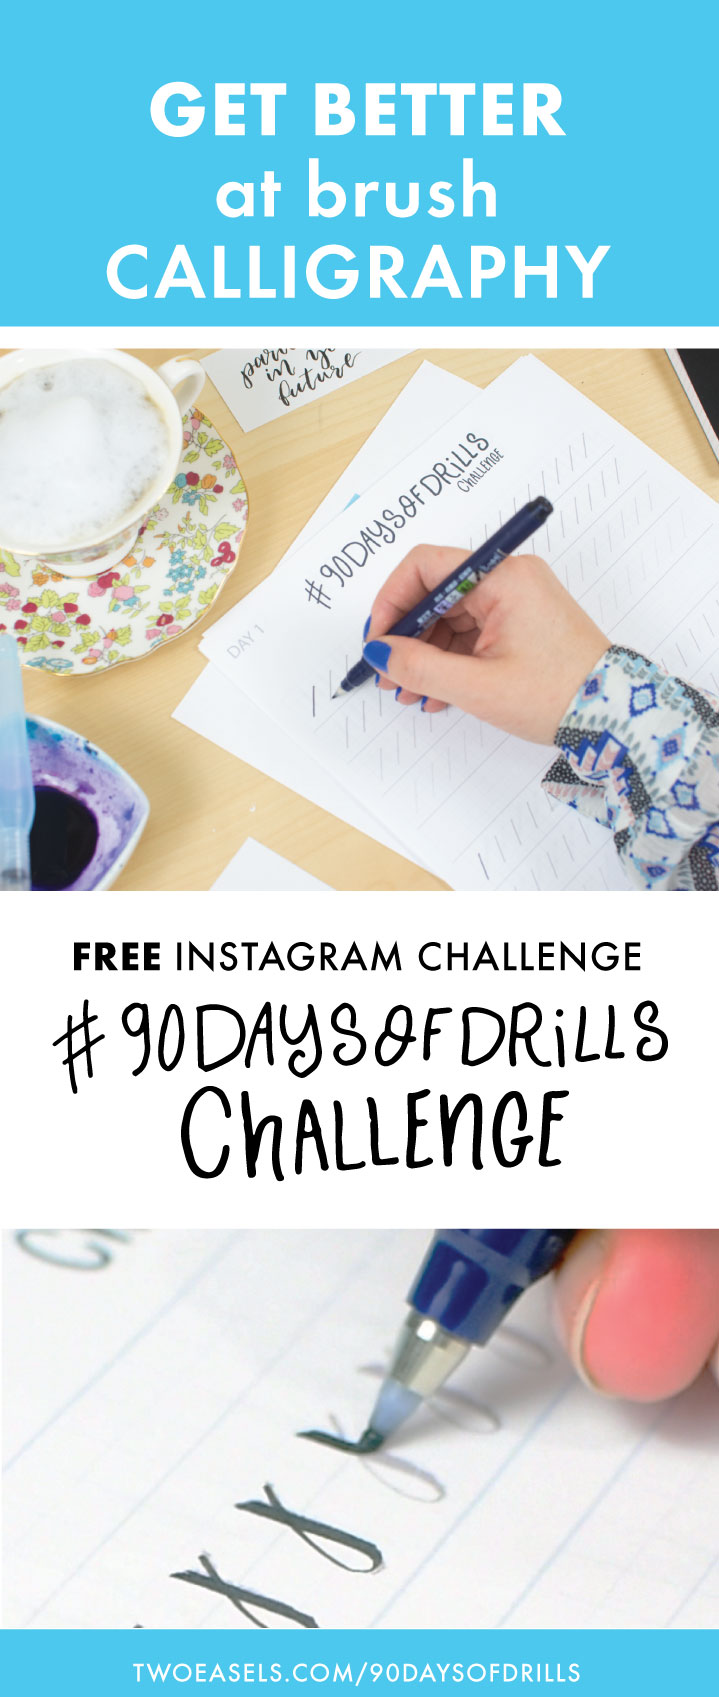 Get better at brush calligraphy. Join this 90 Day challenge